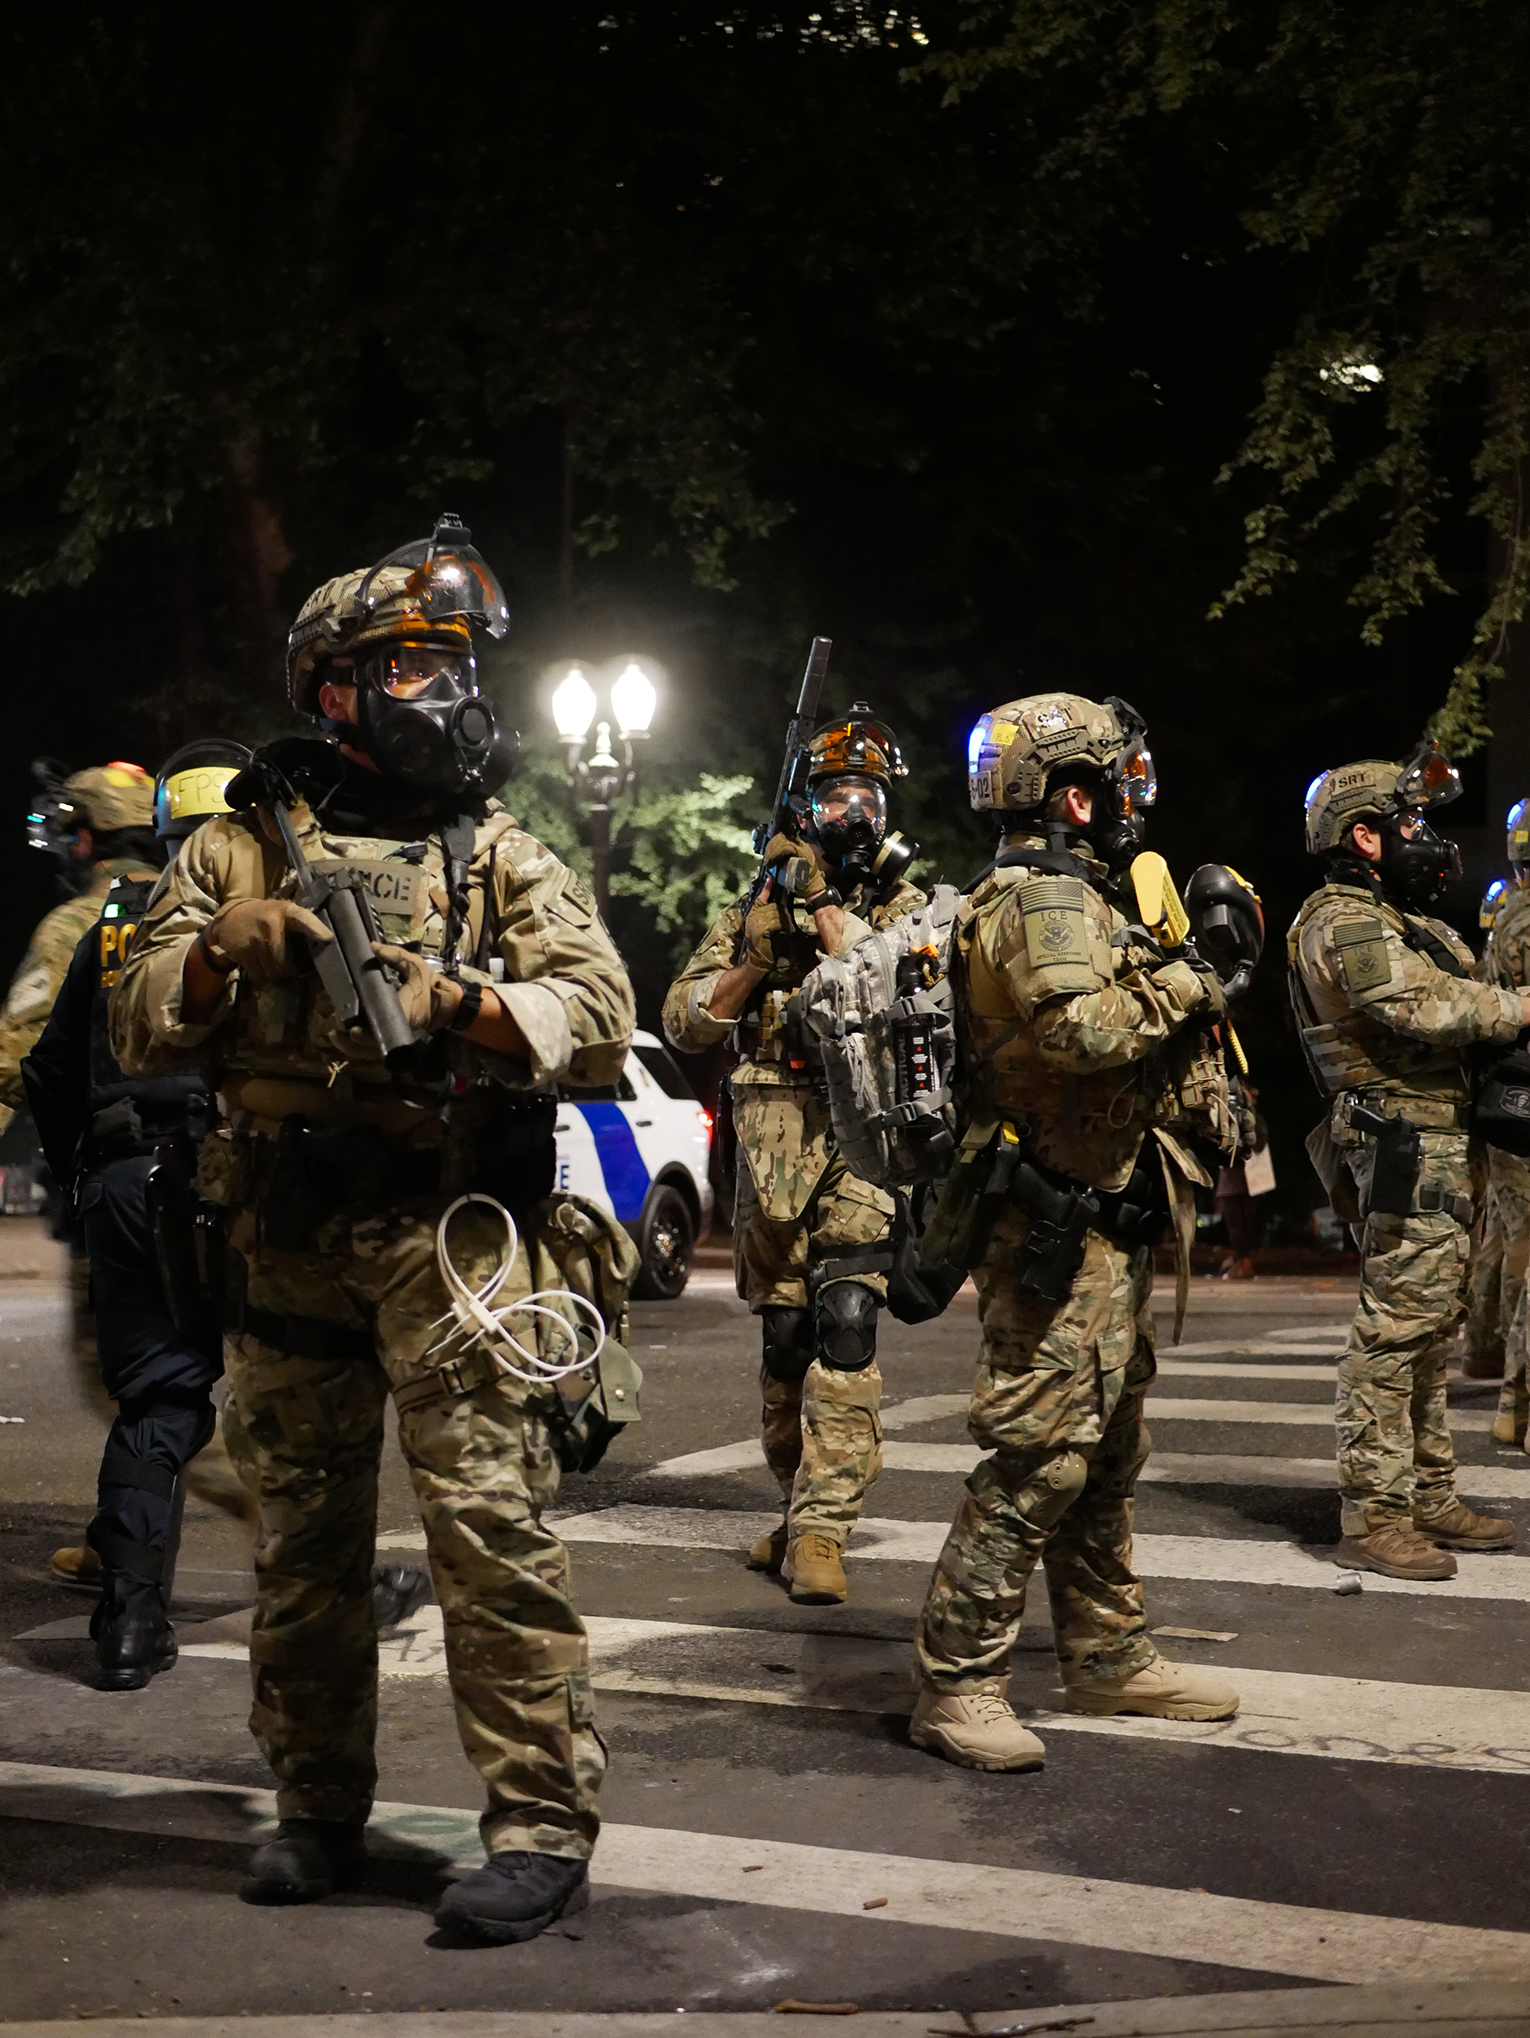 Photograph of police officers dressed in full camouflage protective gear on the streets of downtown PDX.